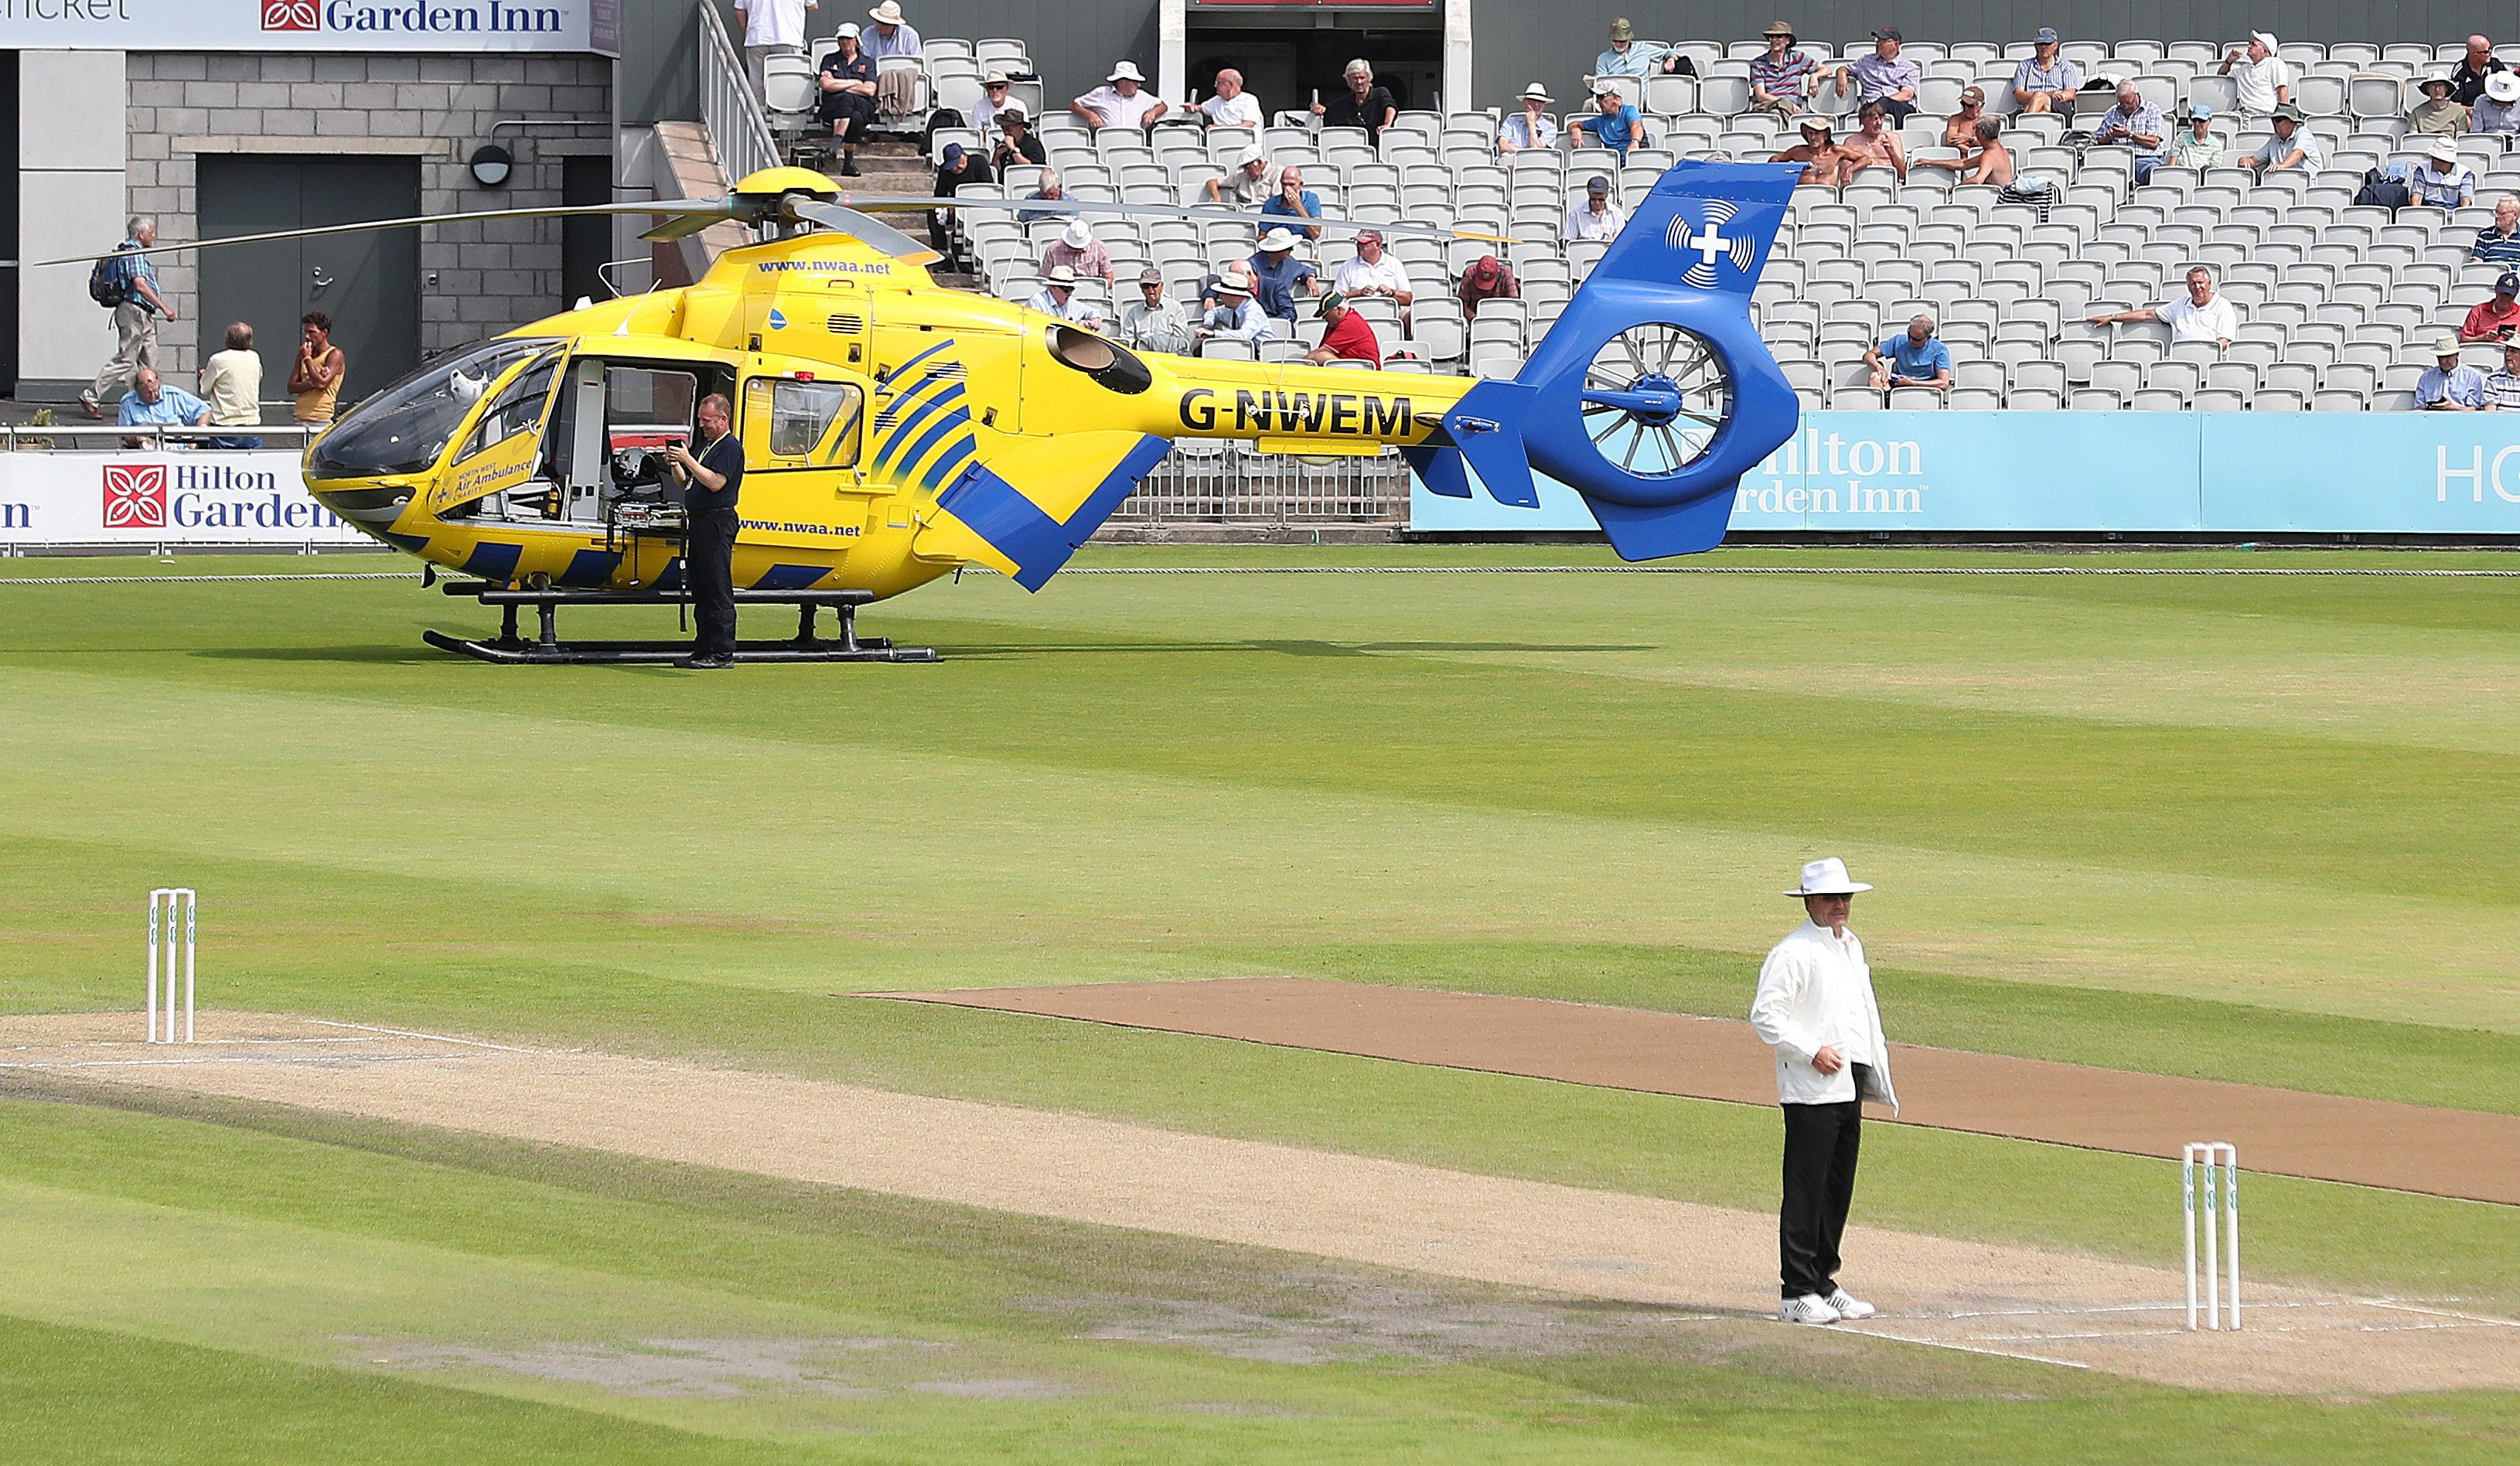 Play between Lancashire and Essex has been suspended